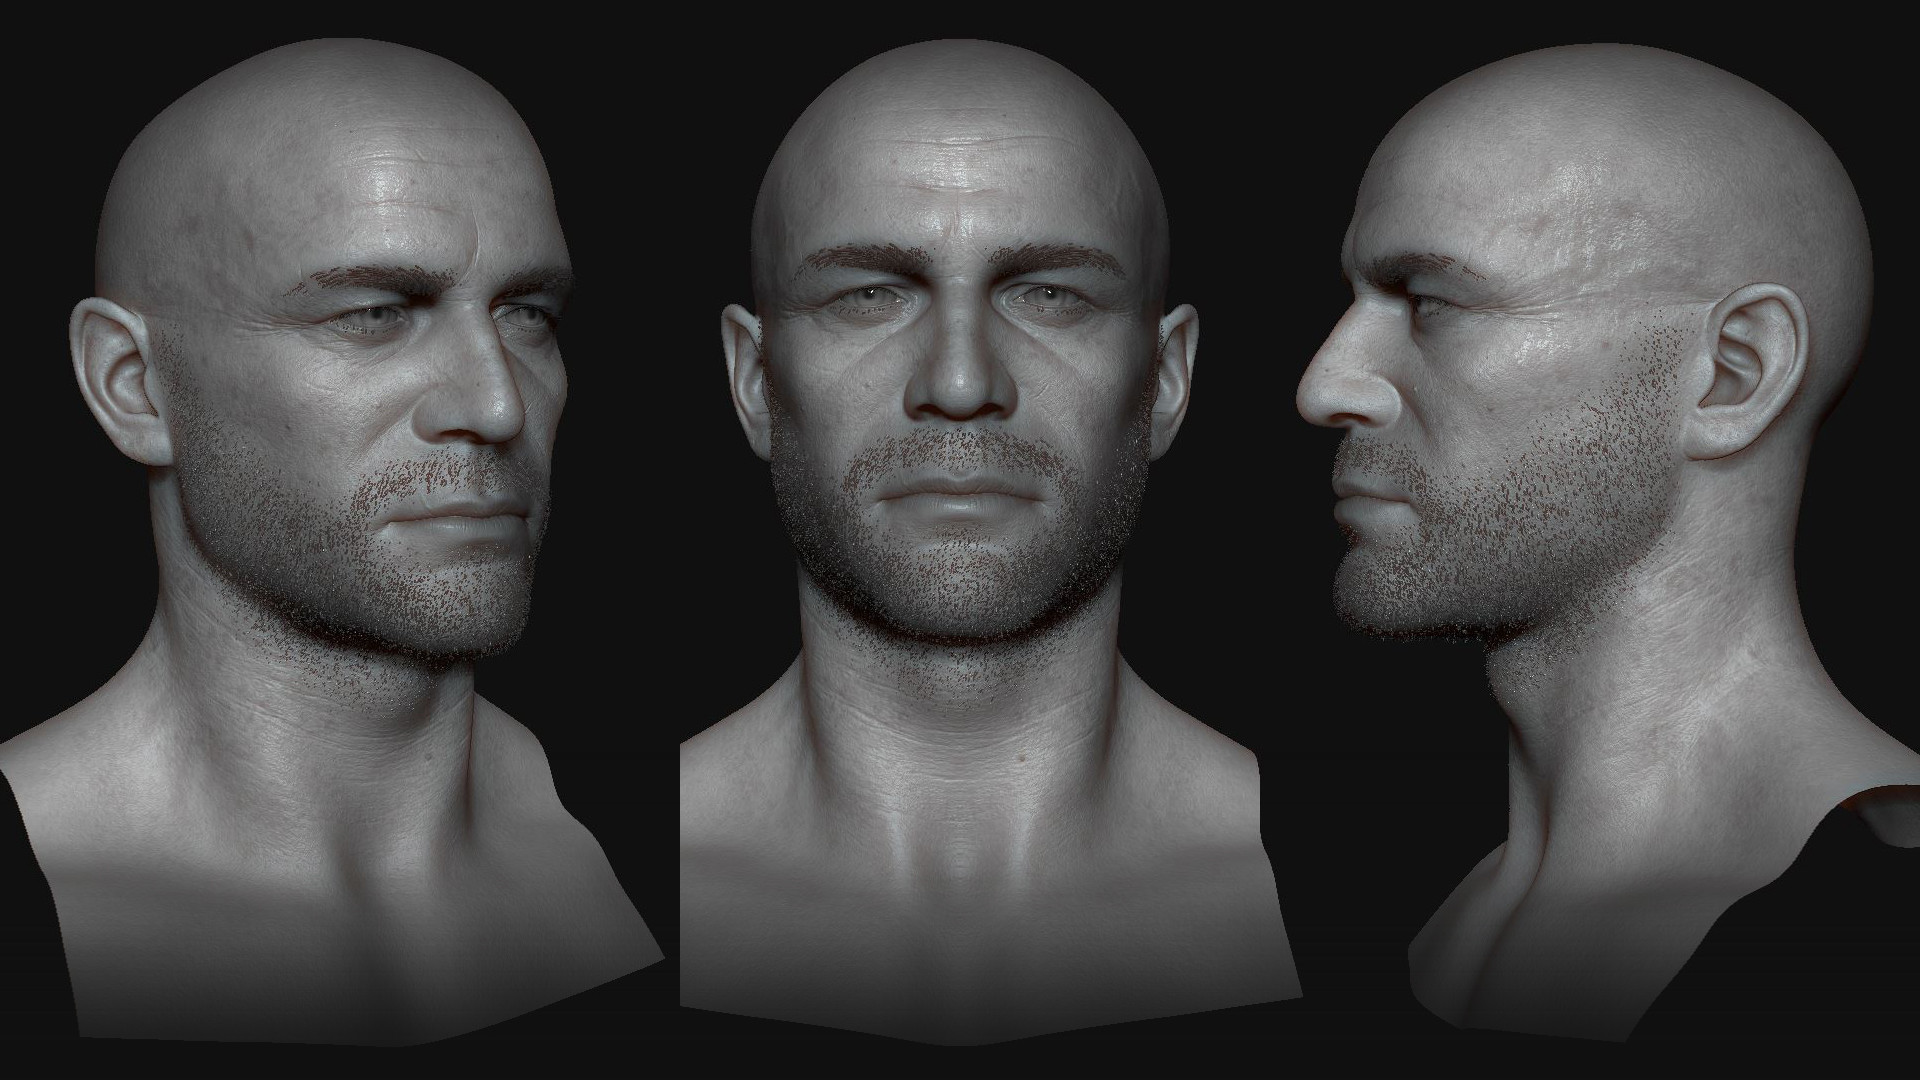 Highpoly sculpt in Zbrush